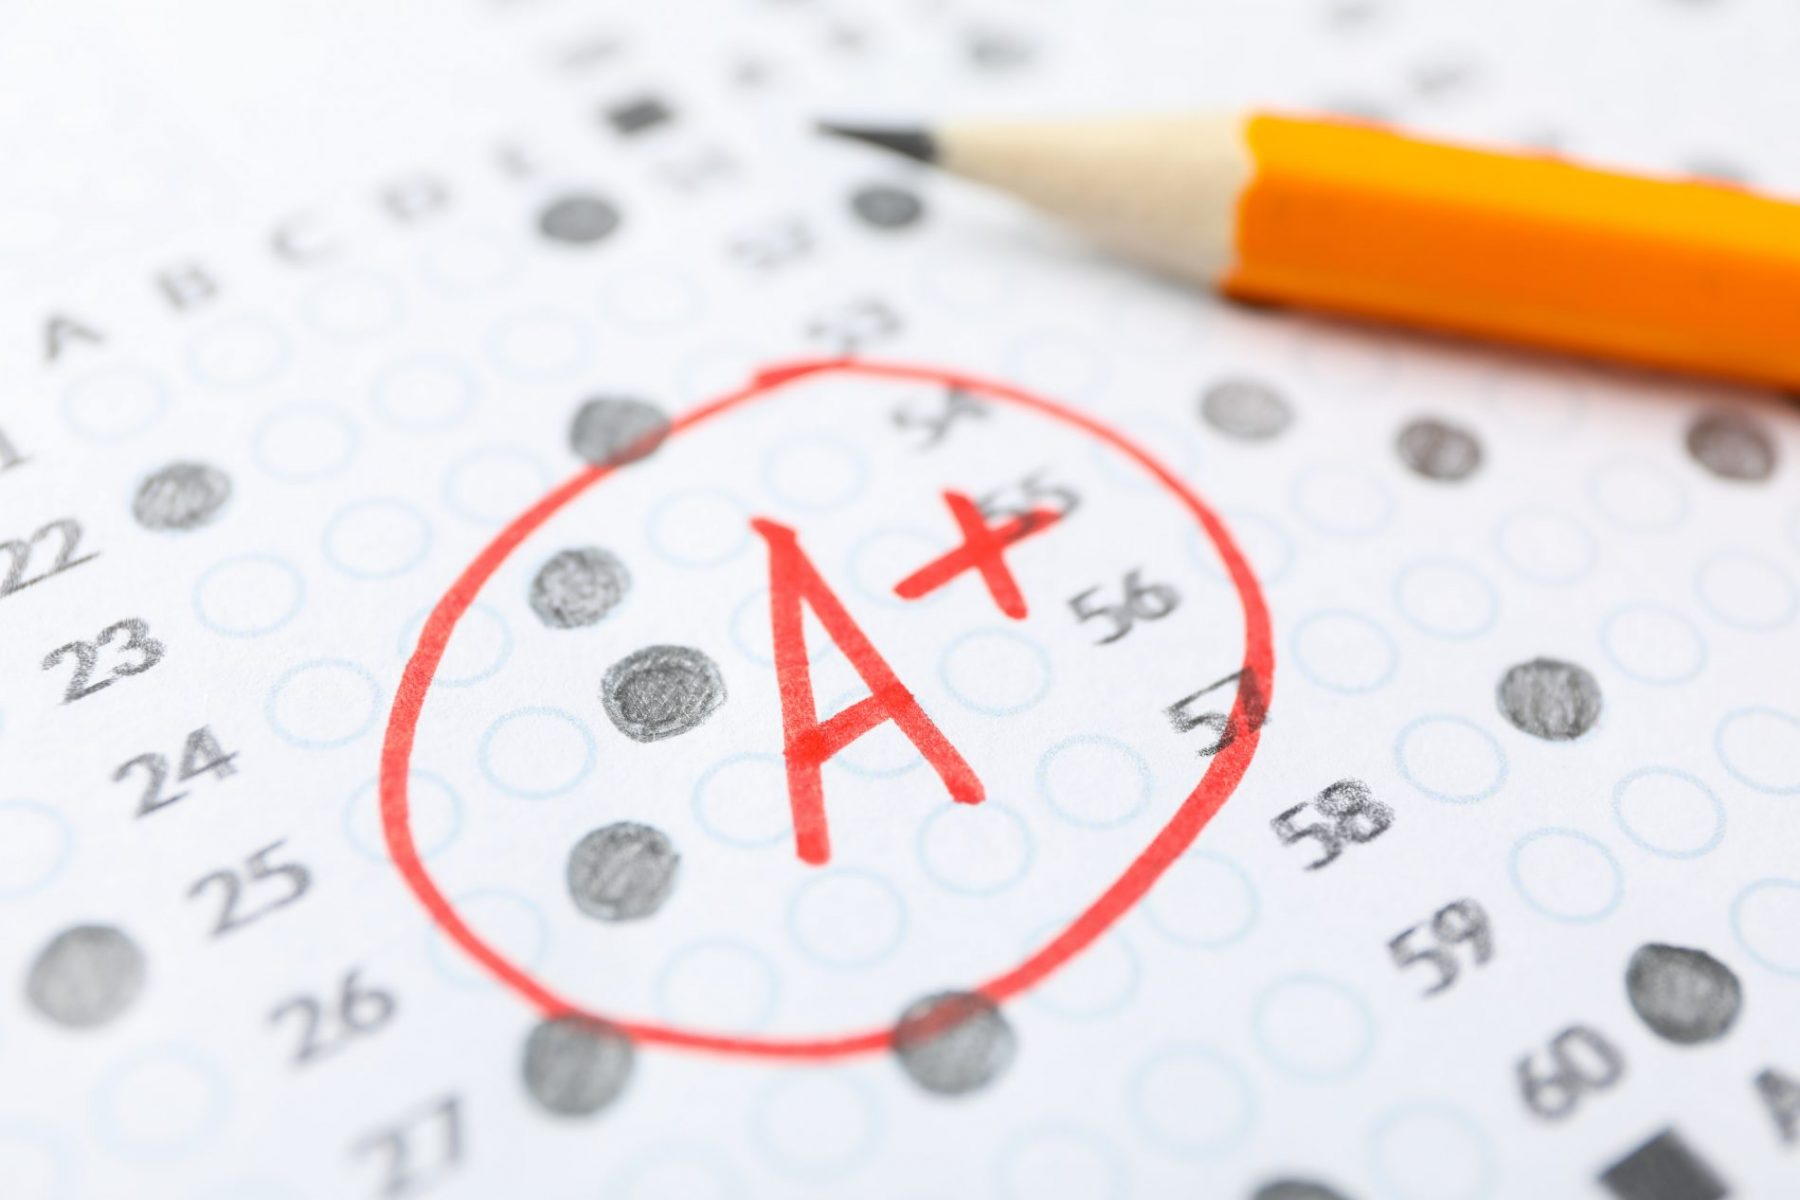 An image of a test page with an A Plus